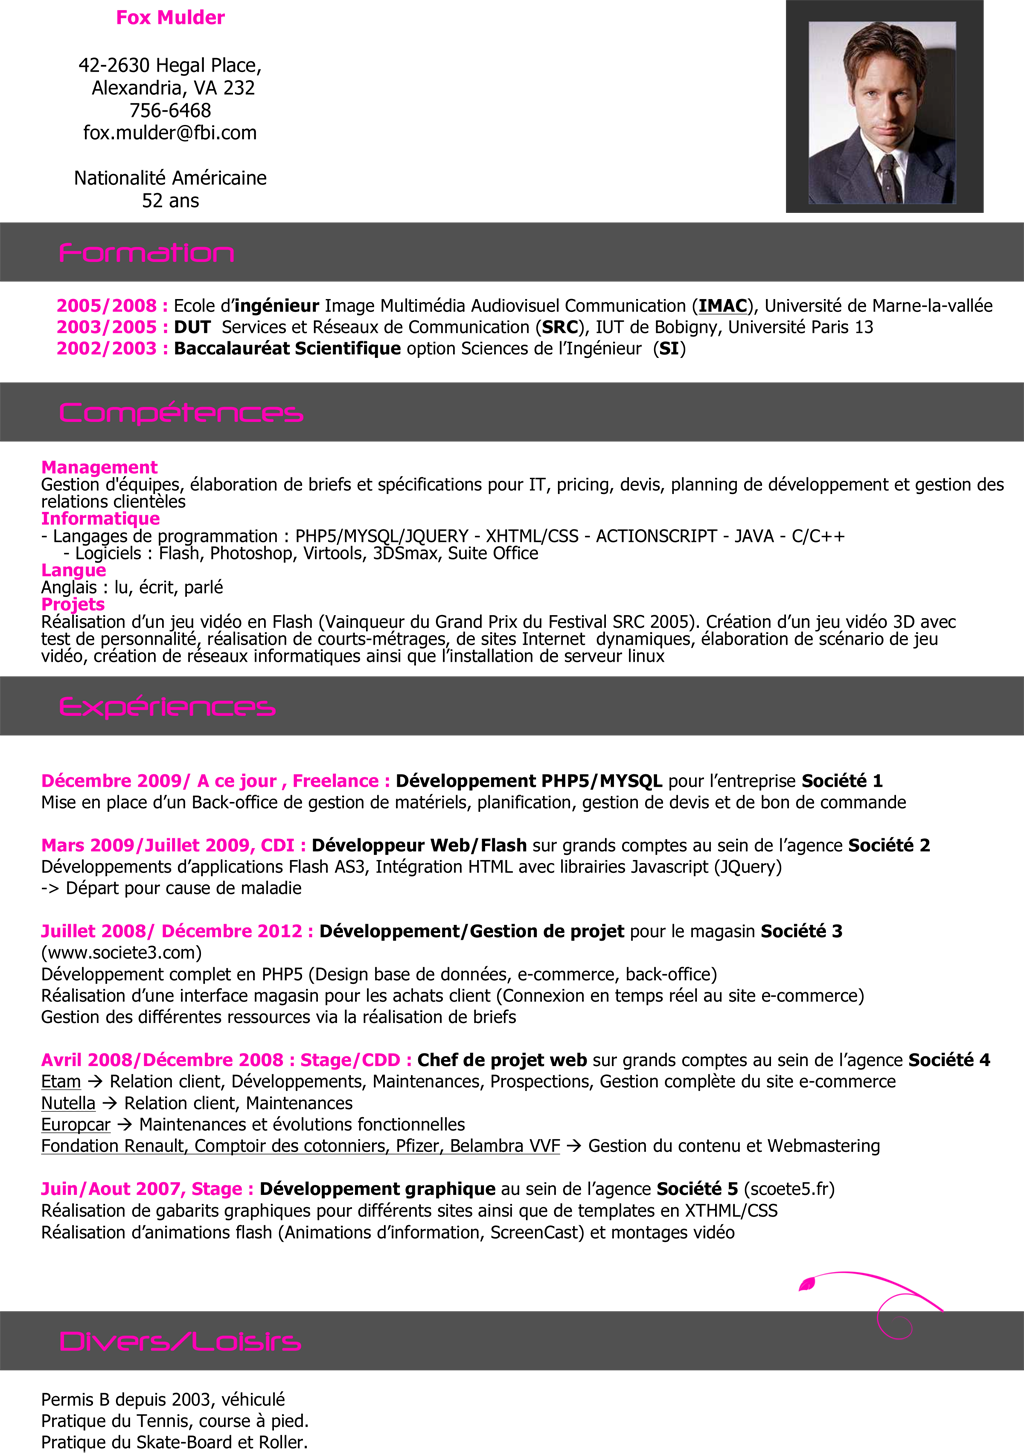 exemple cv informatique developpeur cv type ingenieur informatique   CV Anonyme exemple cv informatique developpeur